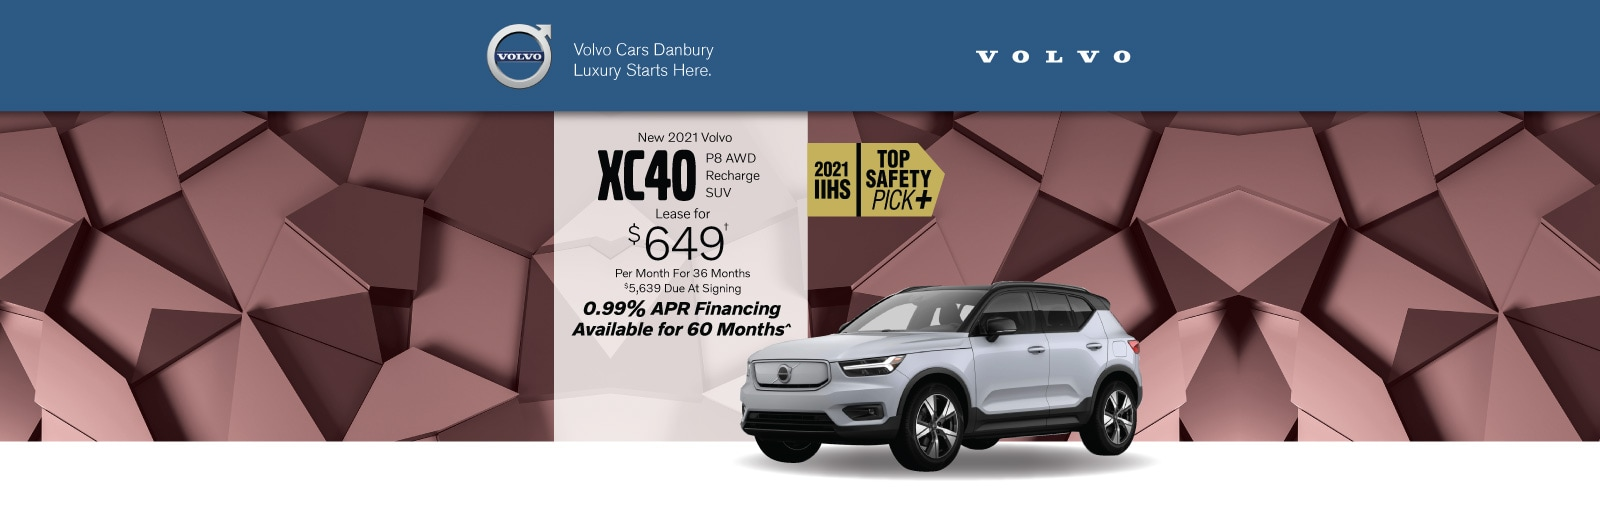 Volvo XC40 lease deal image